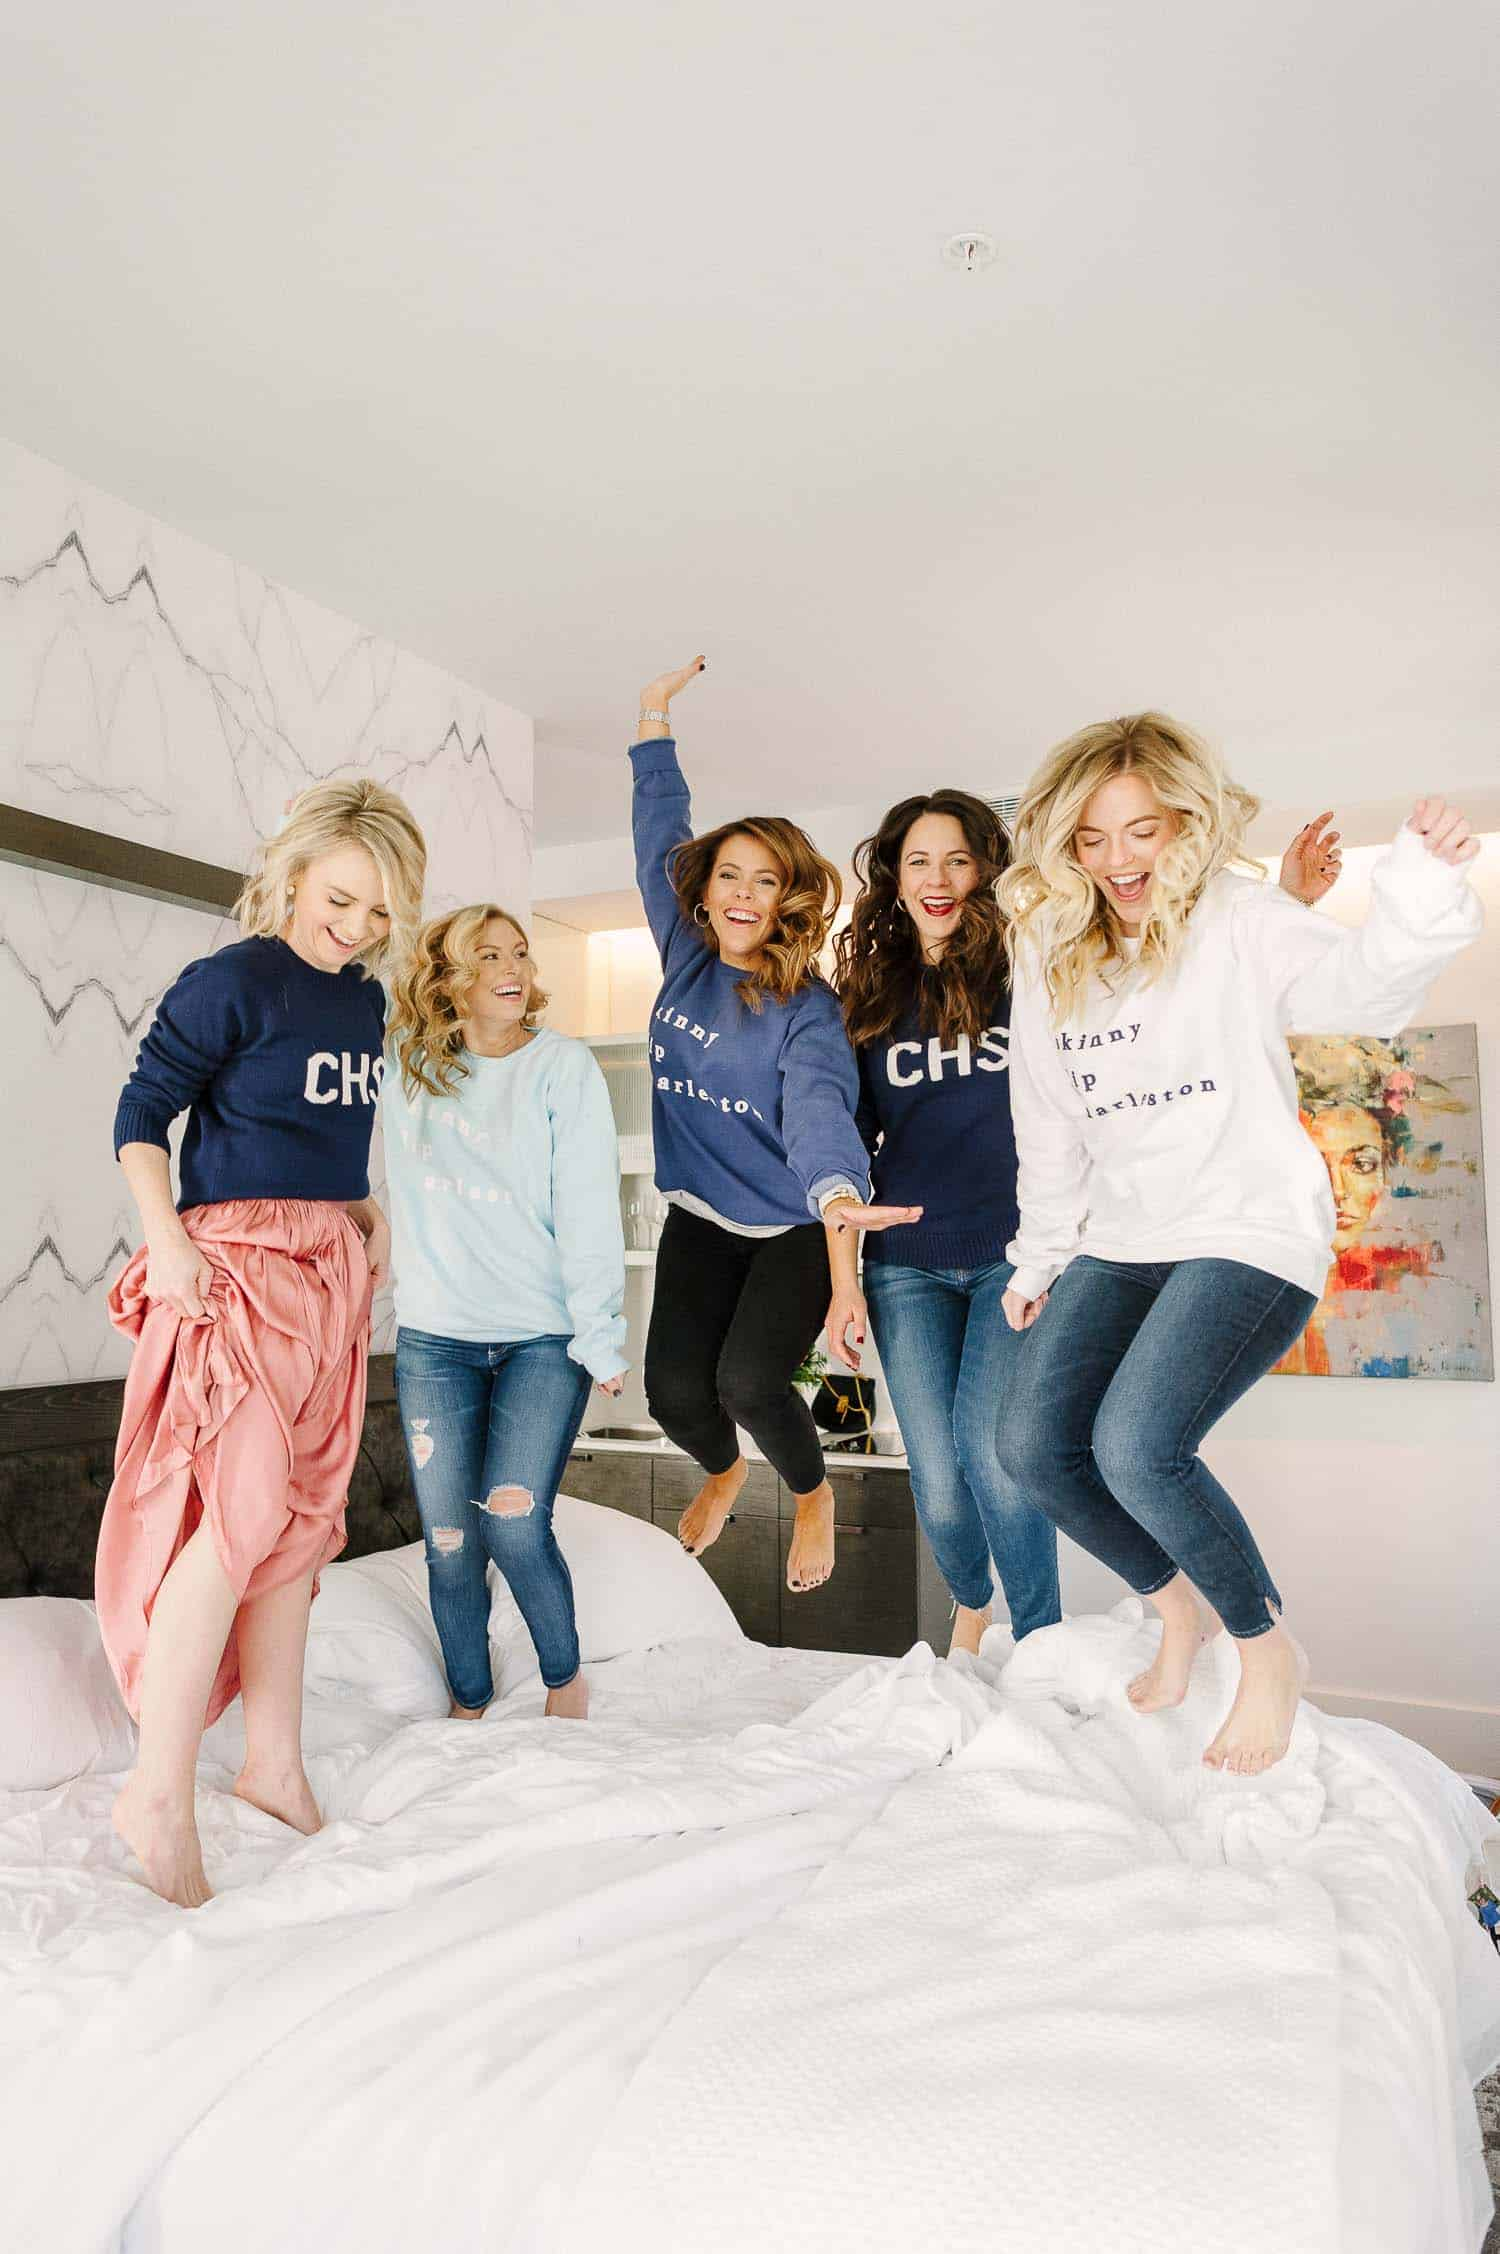 Reasons to take a girls trip, friends jumping on bed